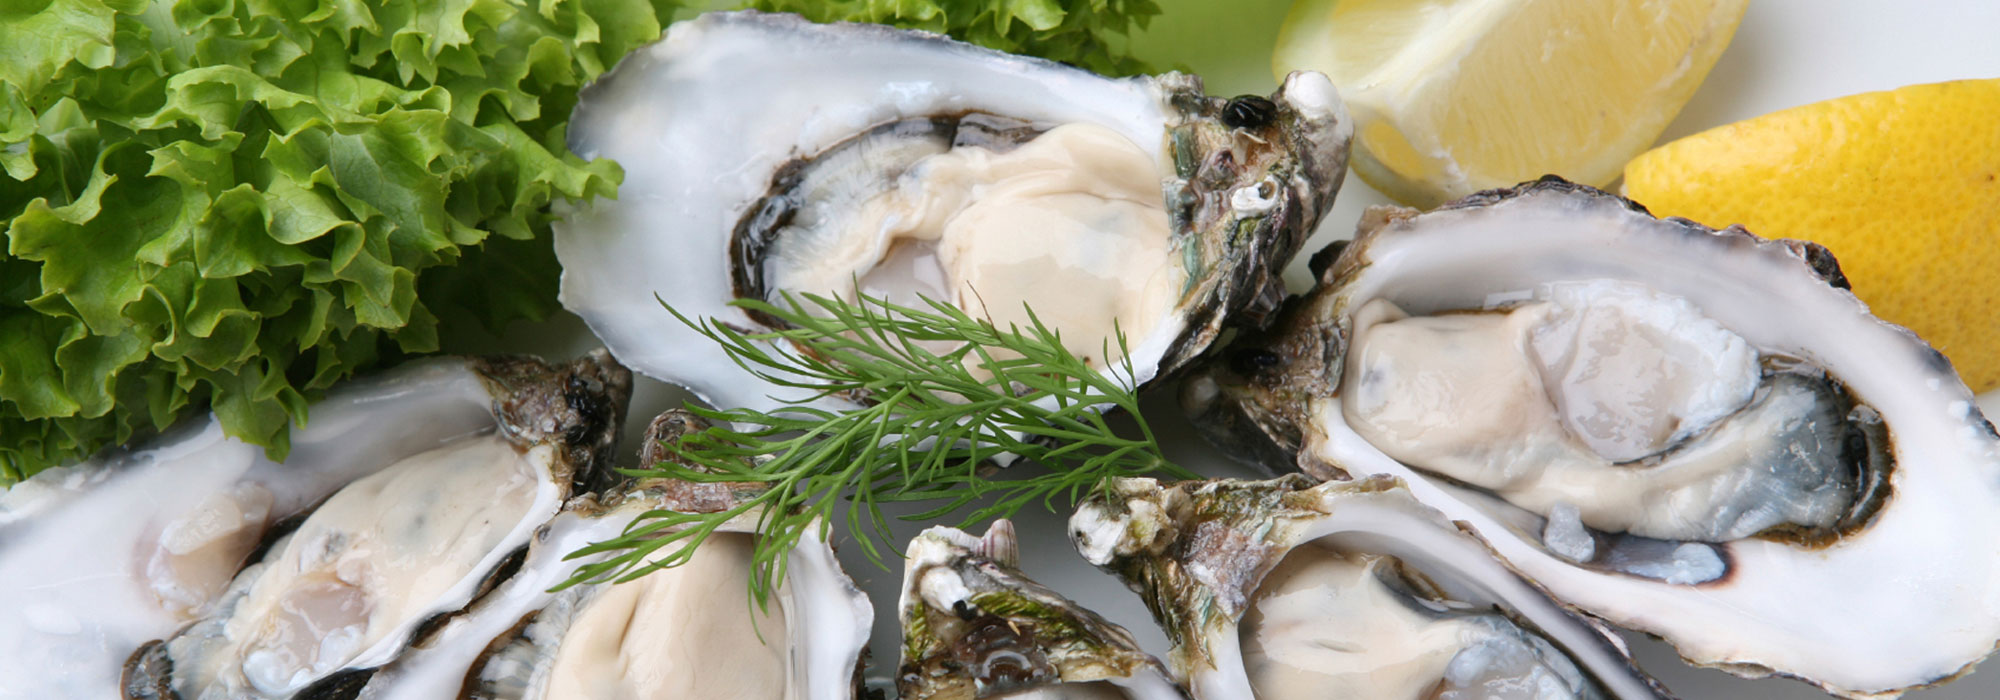 Farmed oysters